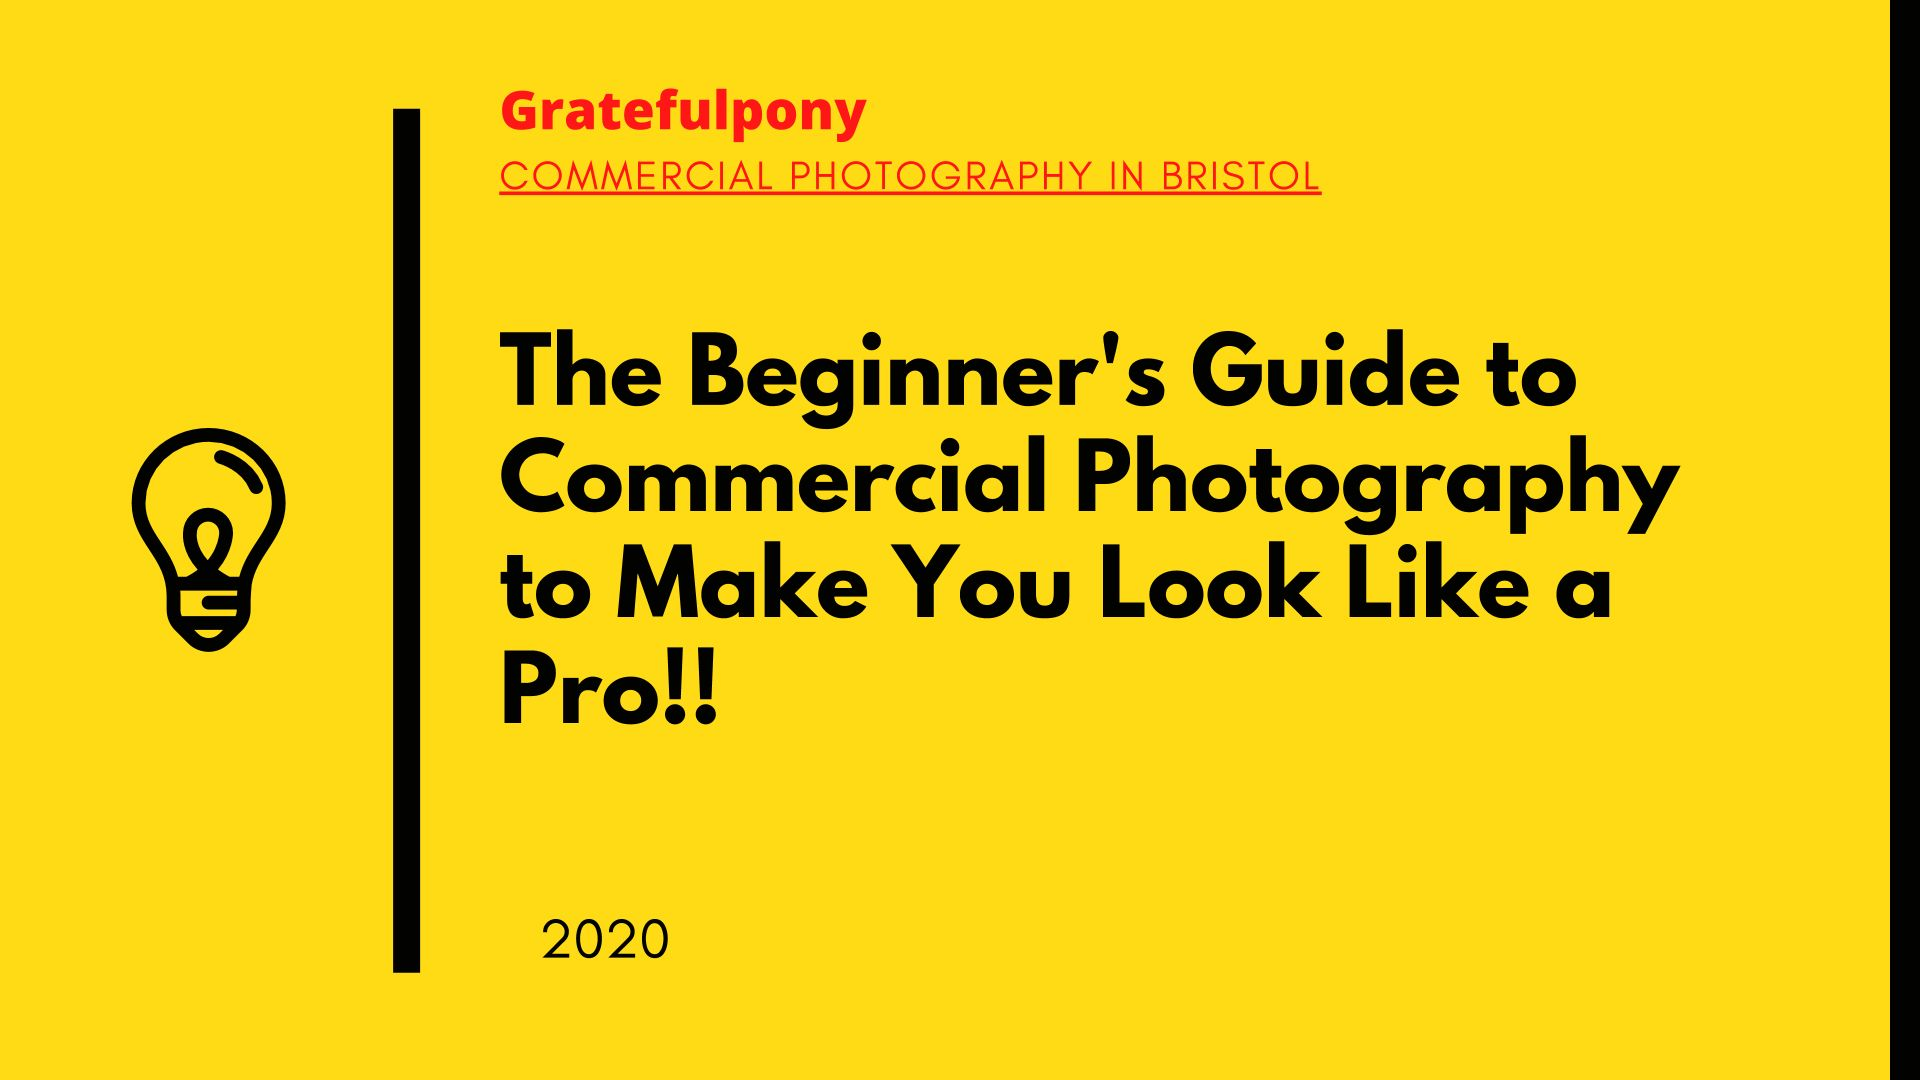 The Beginner's Guide to Commercial Photography | Gratefulpony